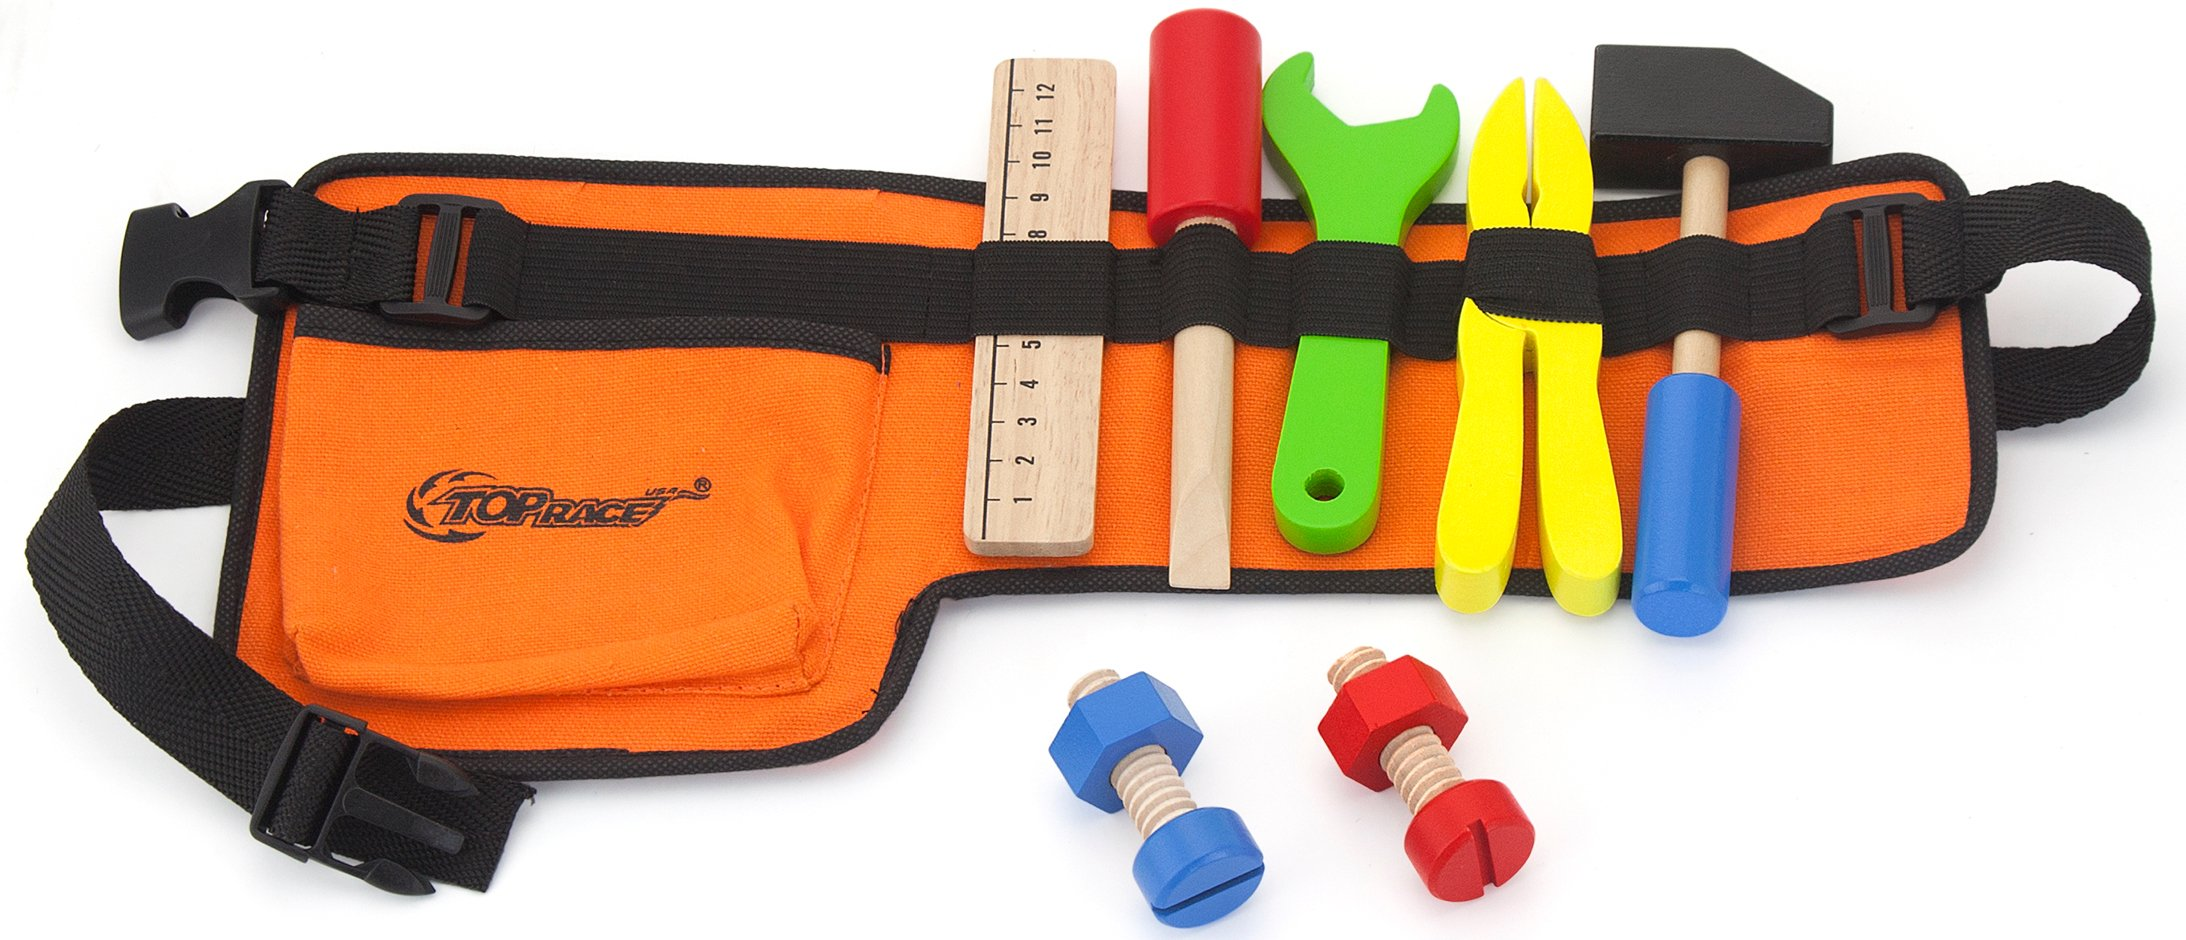 Top Race 10 Piece Tool Belt, Thick Fabric Tool Belt with Solid Wooden Tools, Construction Role Play Set by Top Race